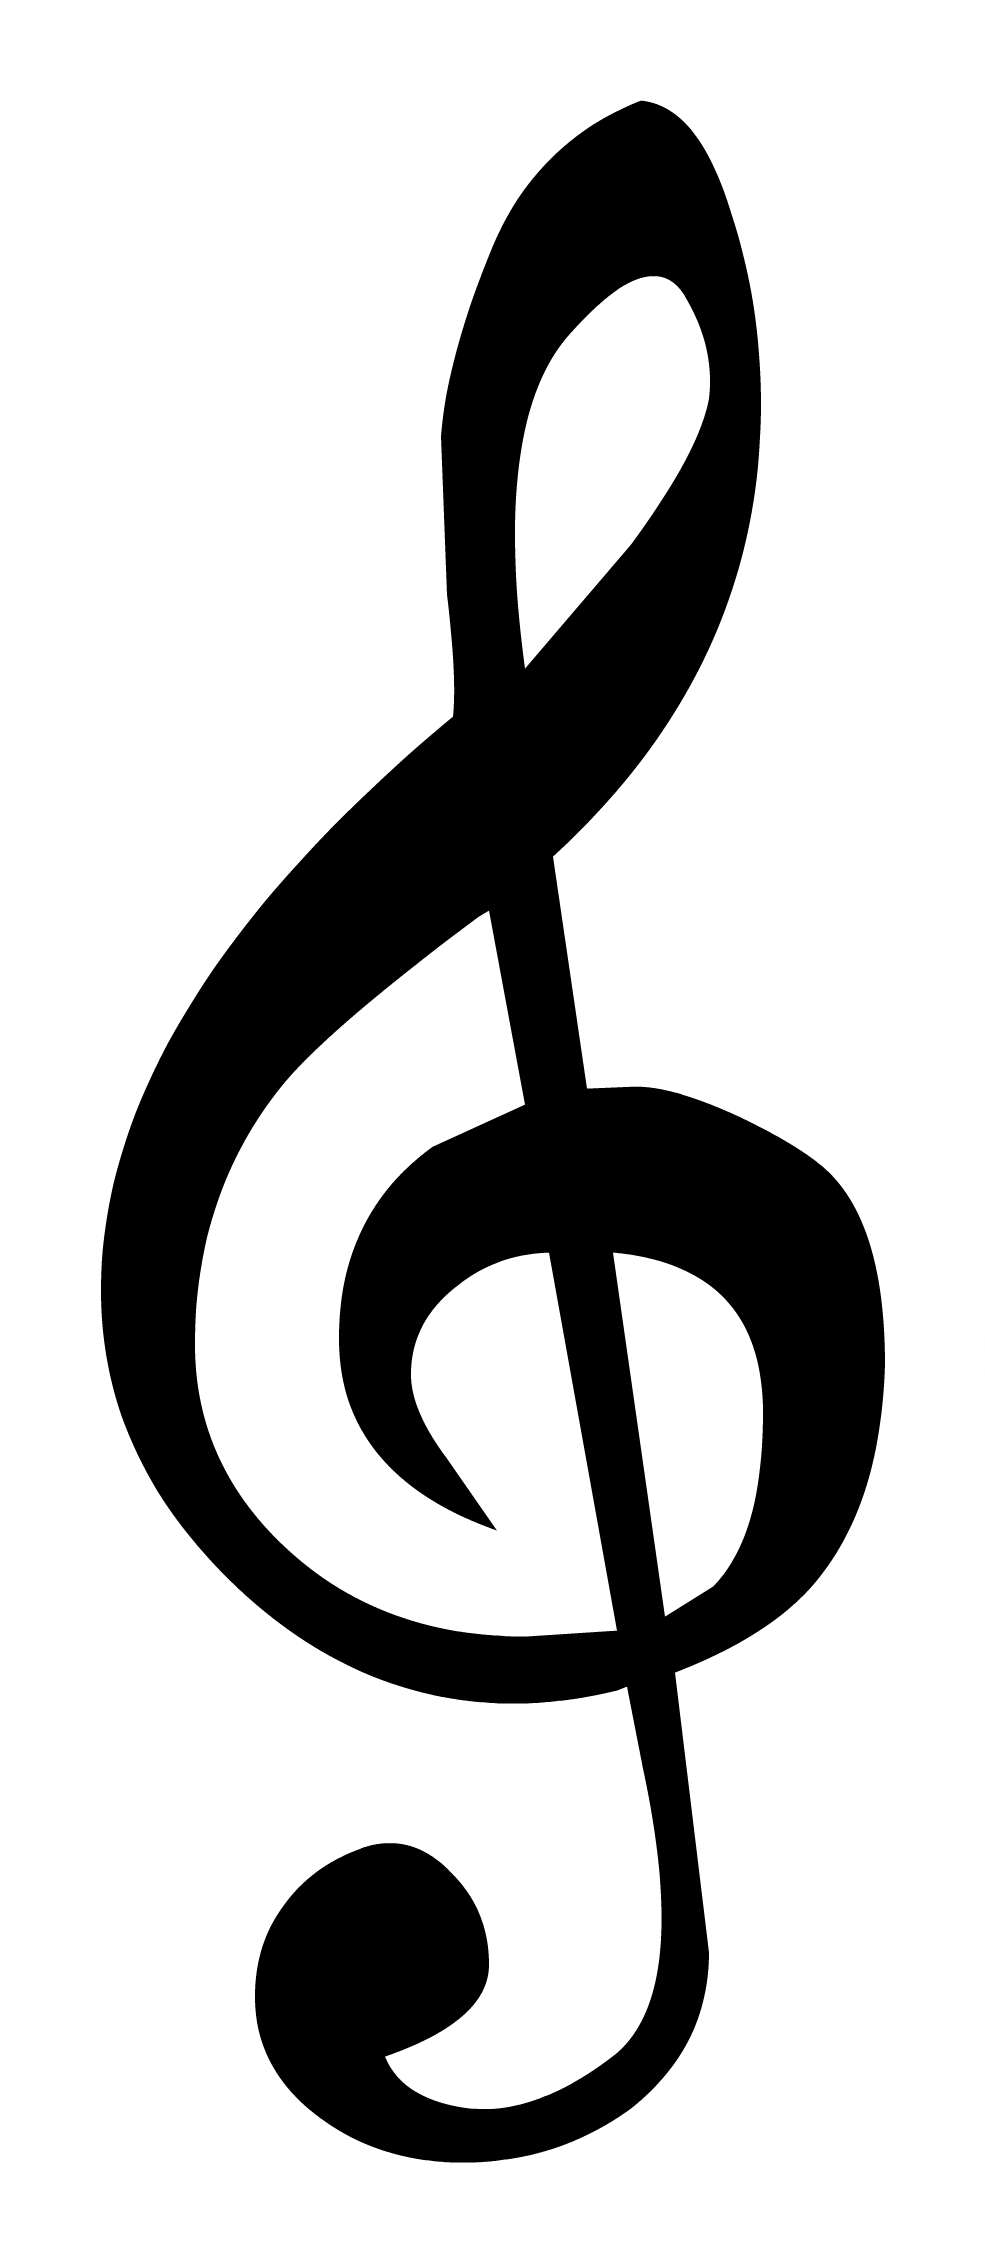 It's just an image of Refreshing Large Printable Music Notes